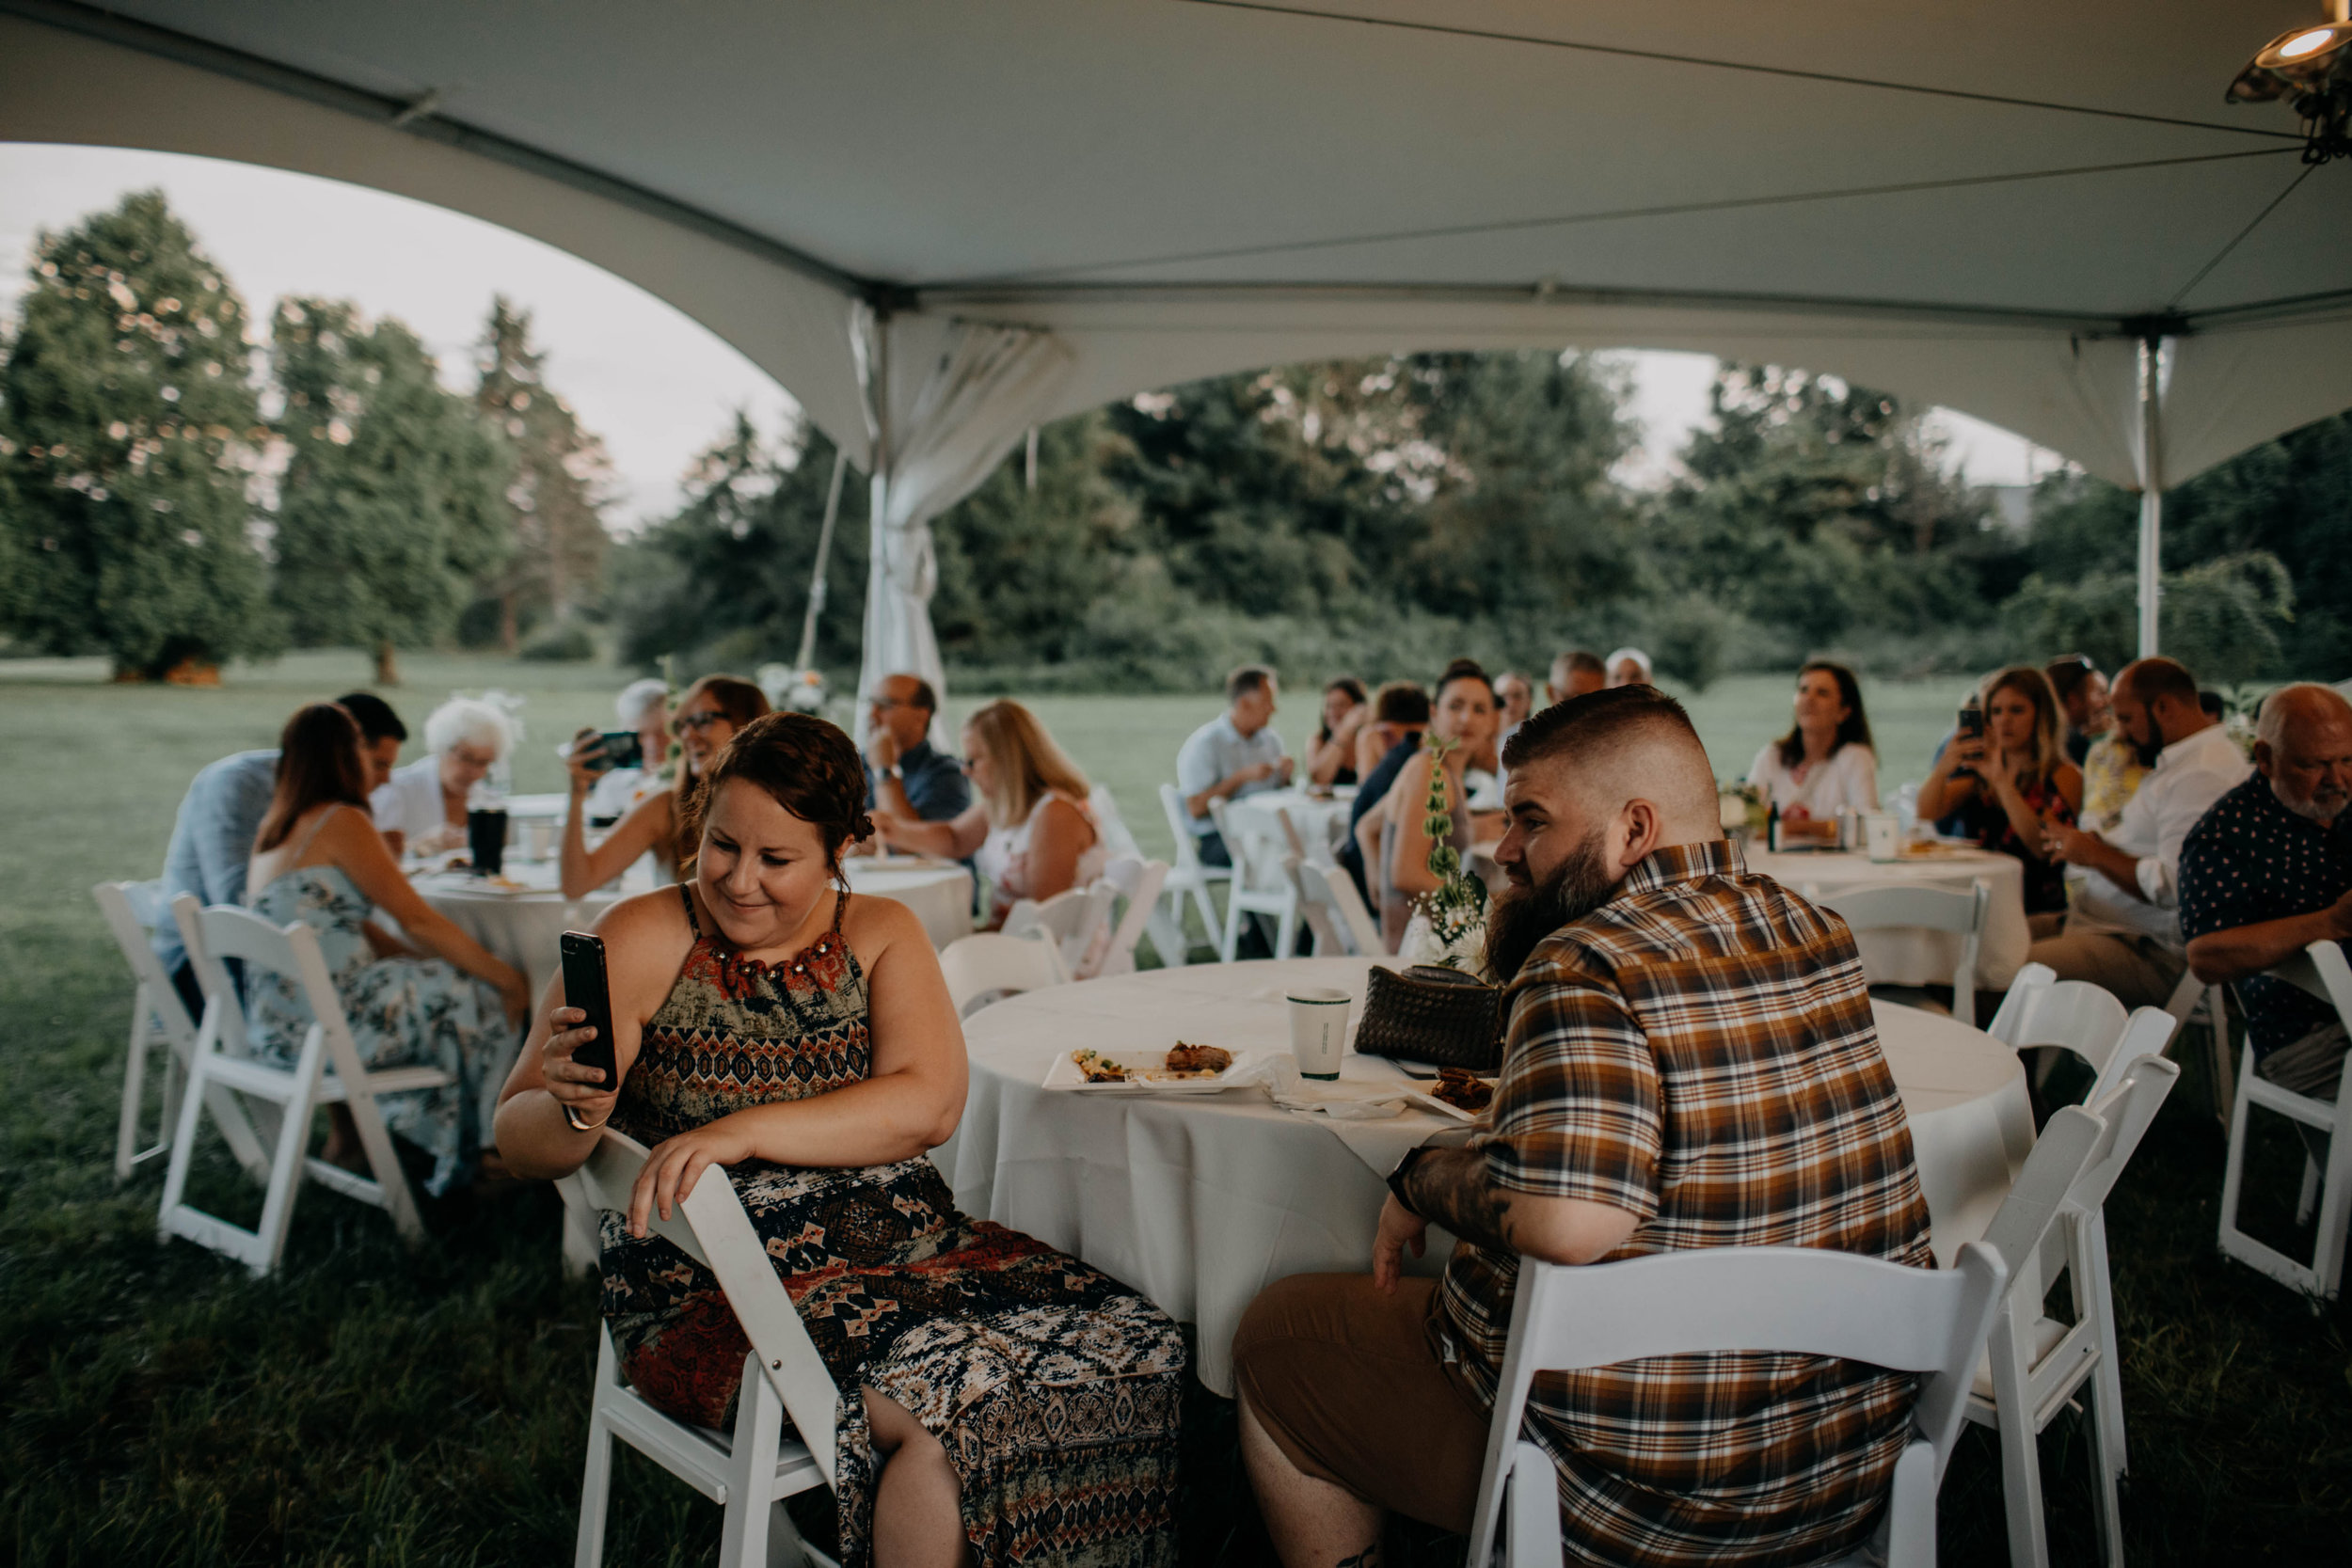 untraditional intimate bed and breakfast wedding orchard house bed and breakfast wedding granville ohio232.jpg